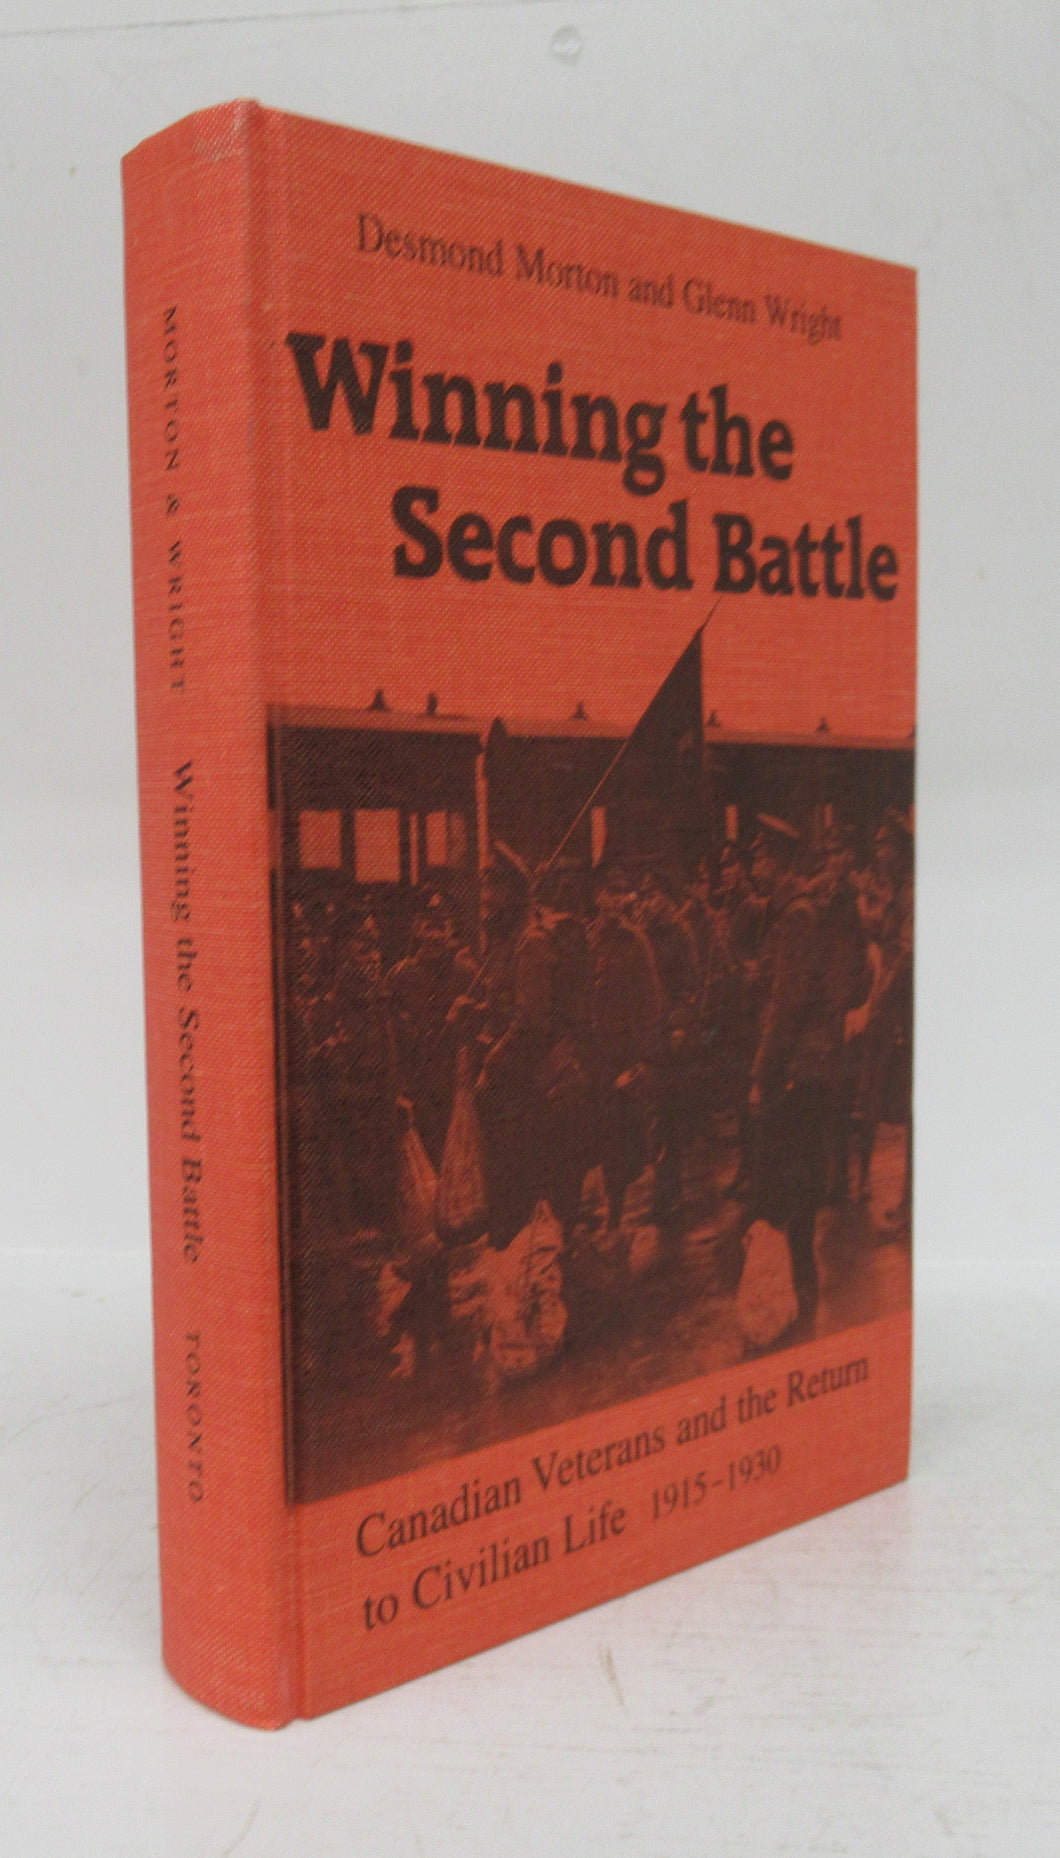 Winning the Second Battle: Canadian Veterans and the Return to Civilian Life 1915-1930